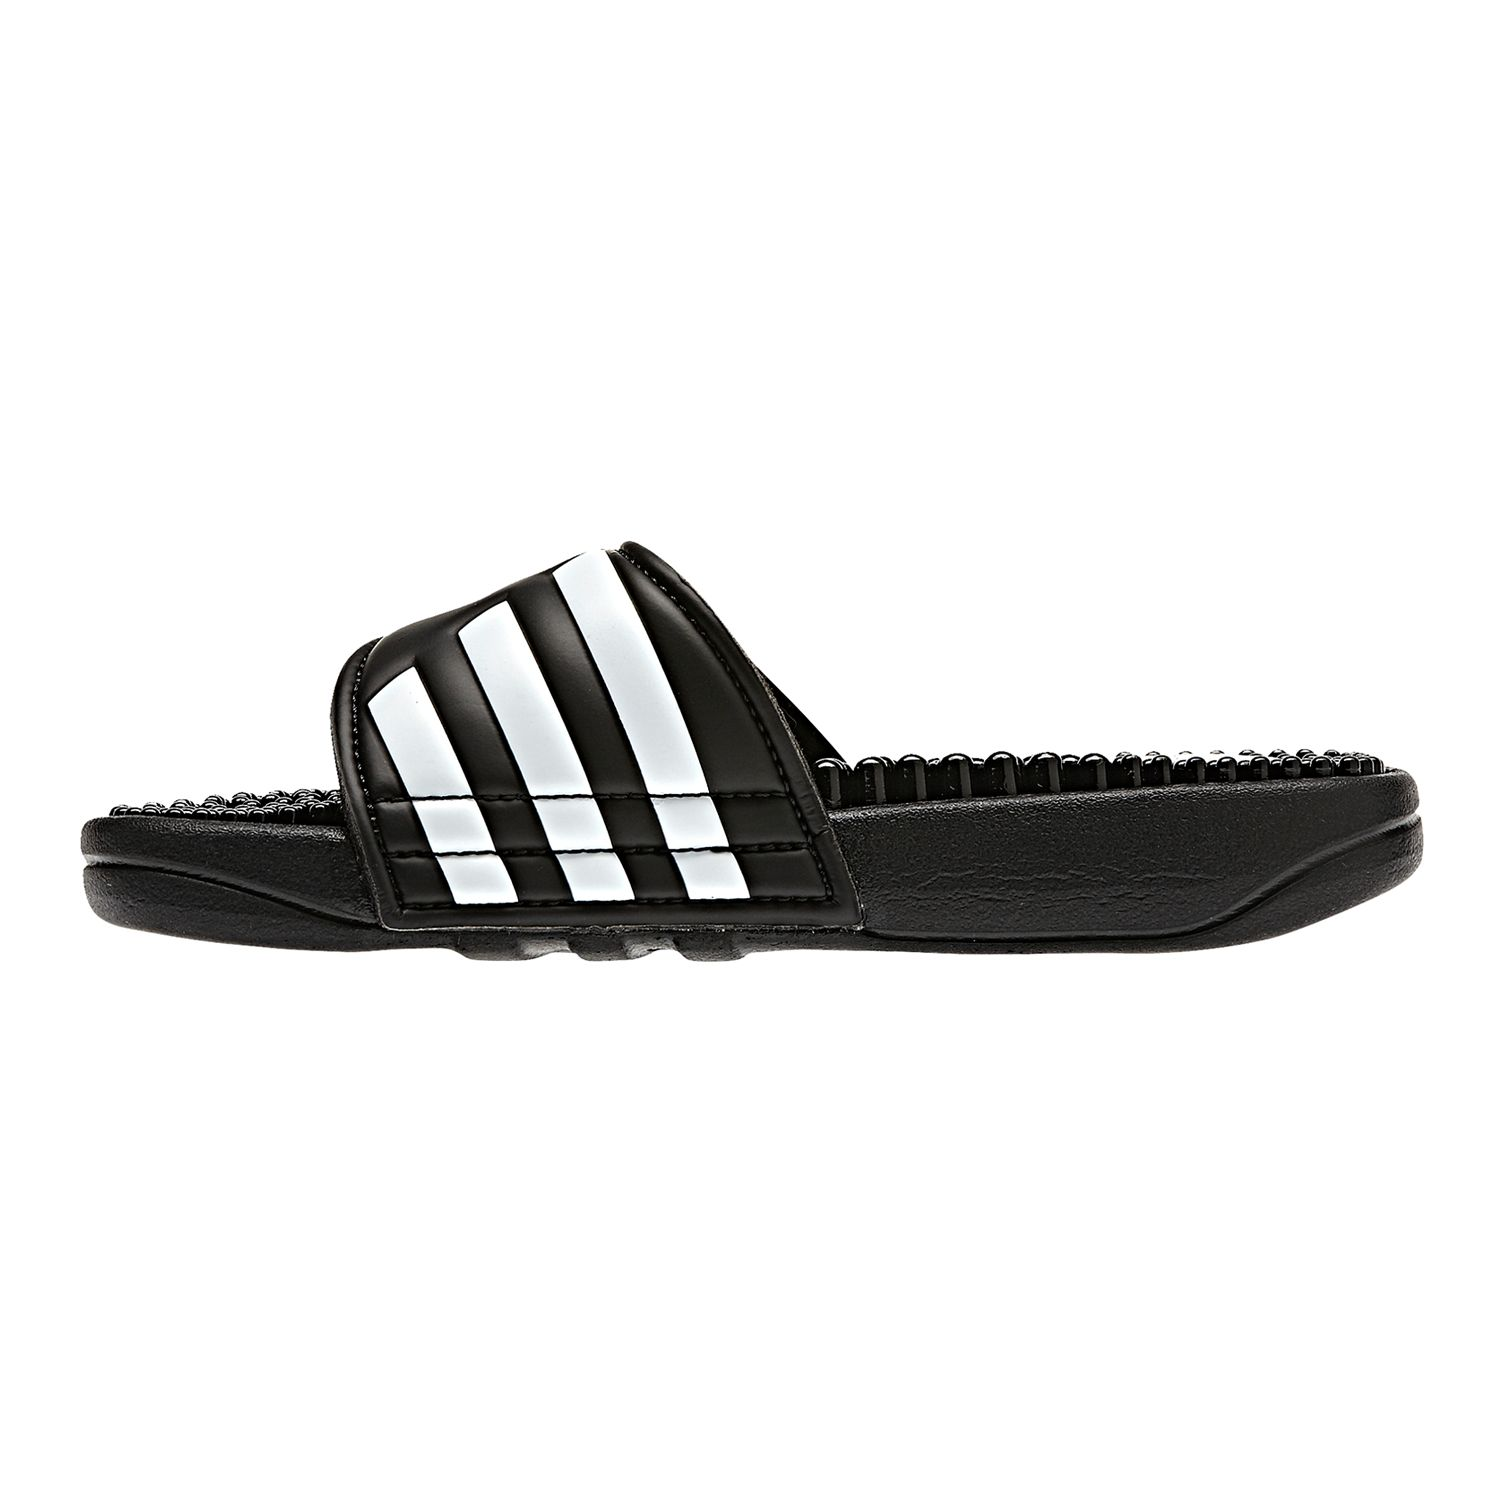 0ceb35ef52b30 Adidas Sandals - Shoes